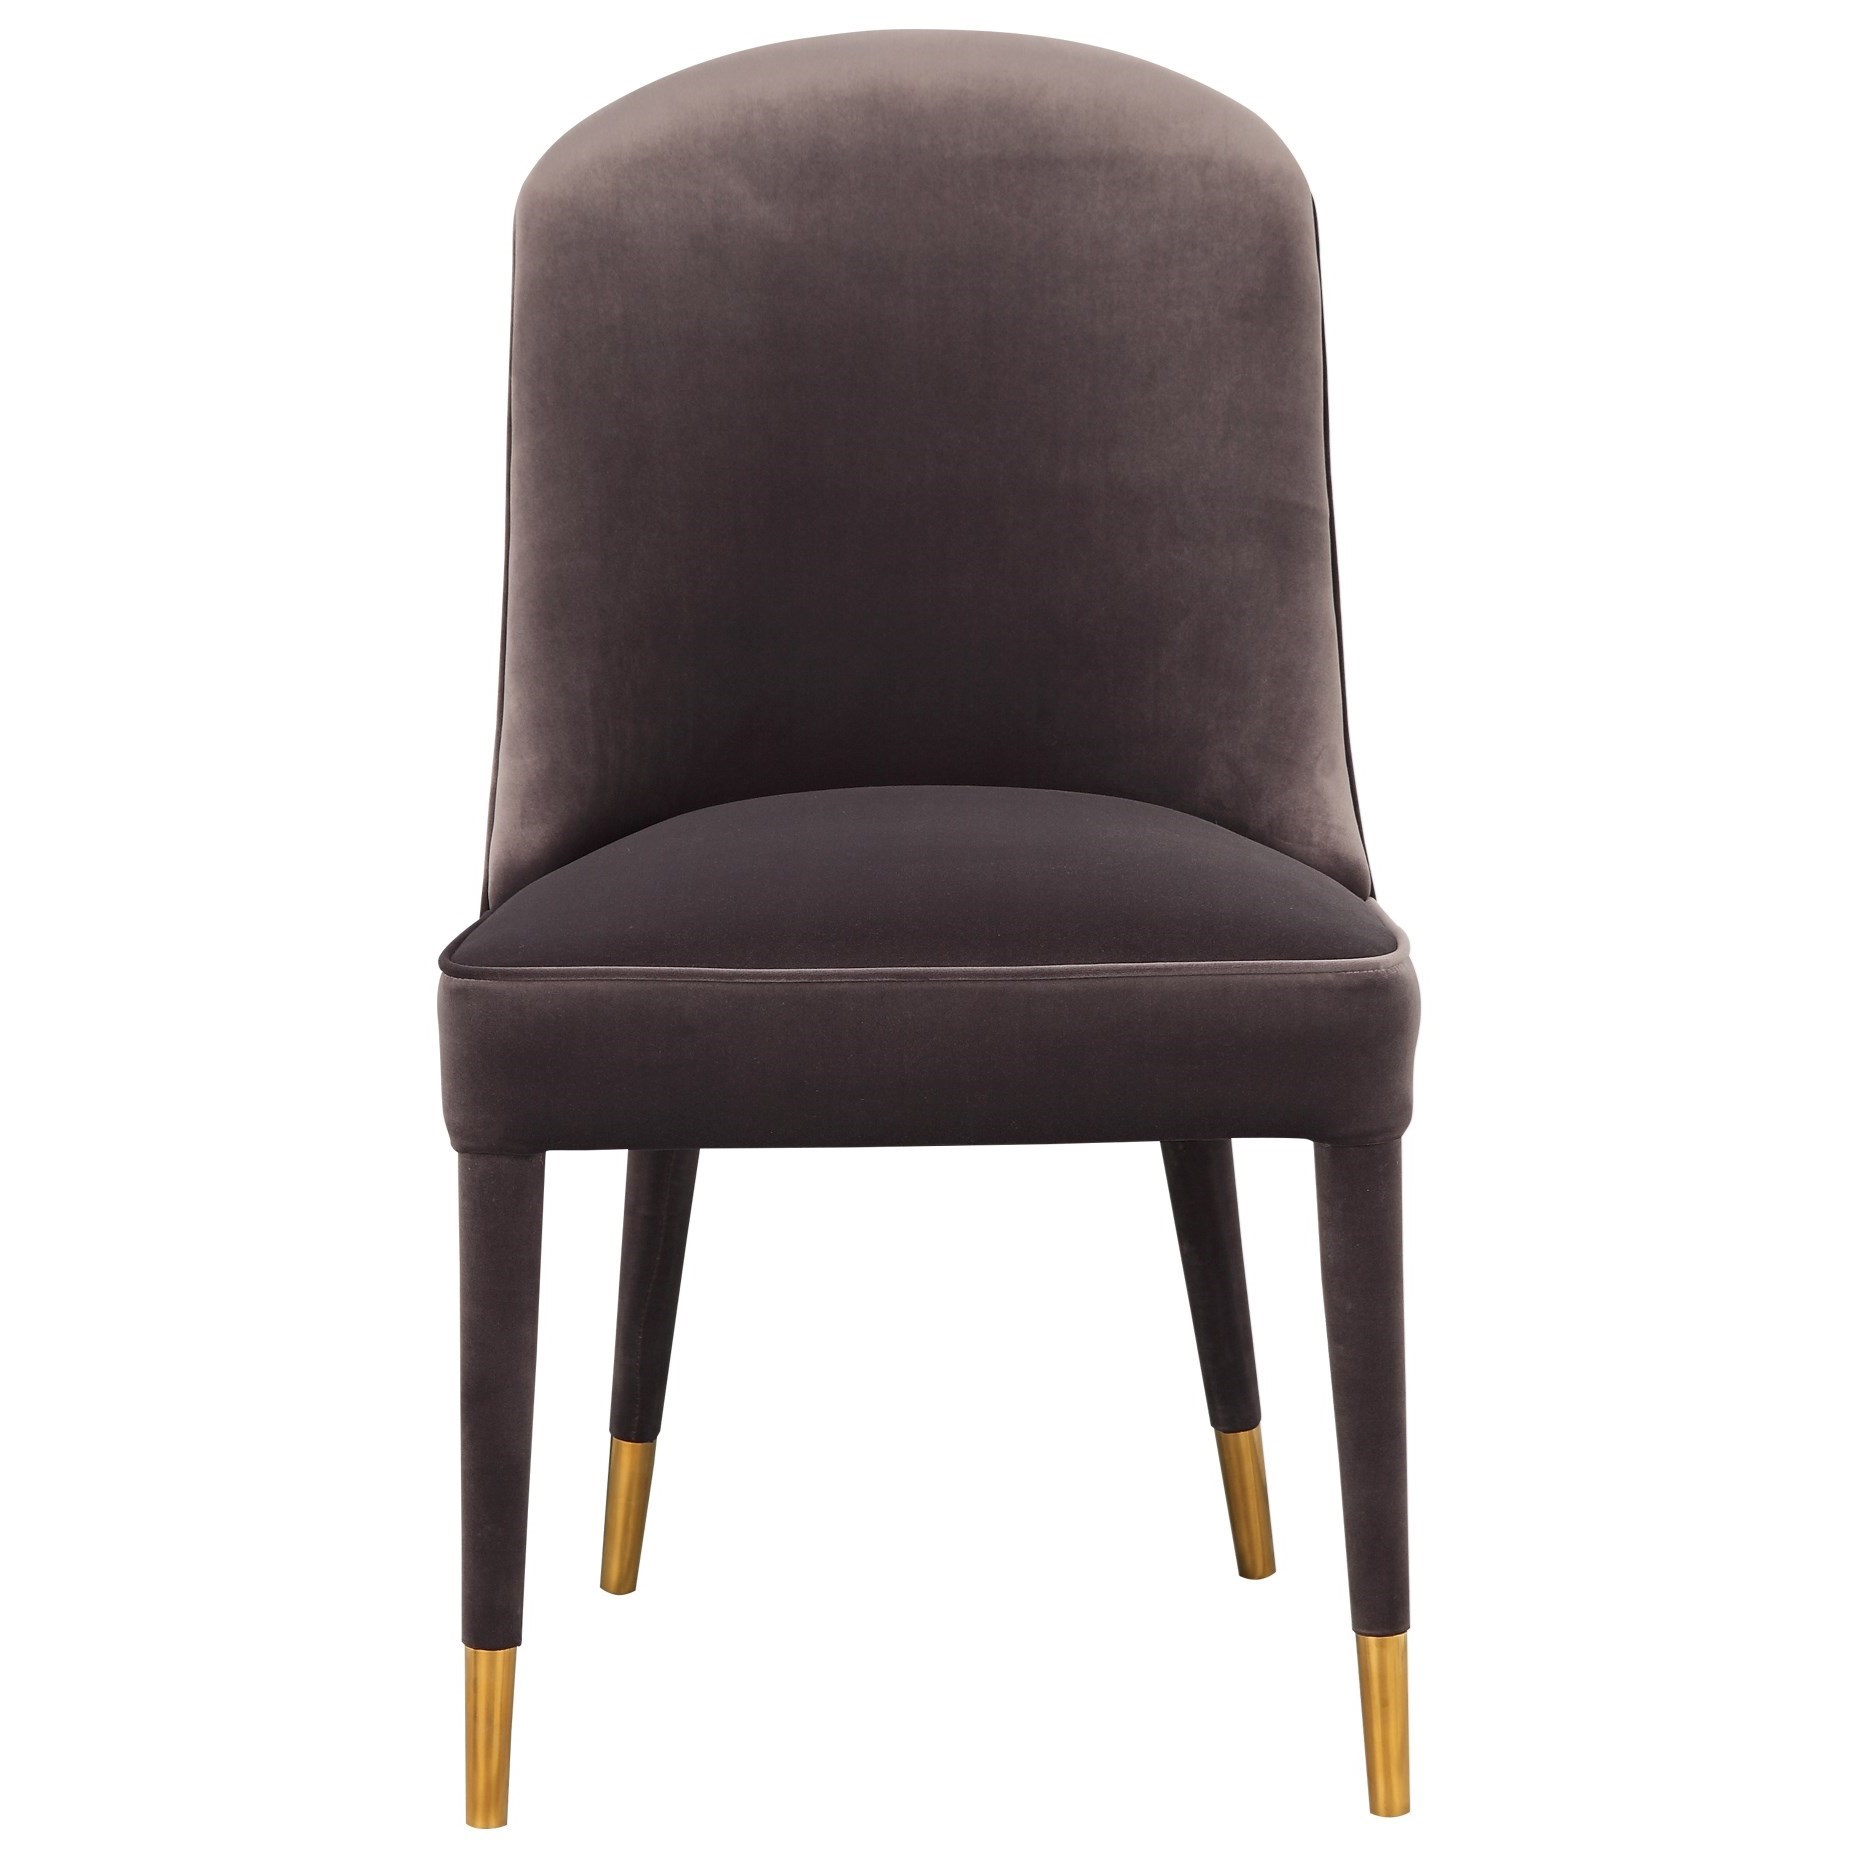 Liberty Dining Chair by Moe's Home Collection at Stoney Creek Furniture